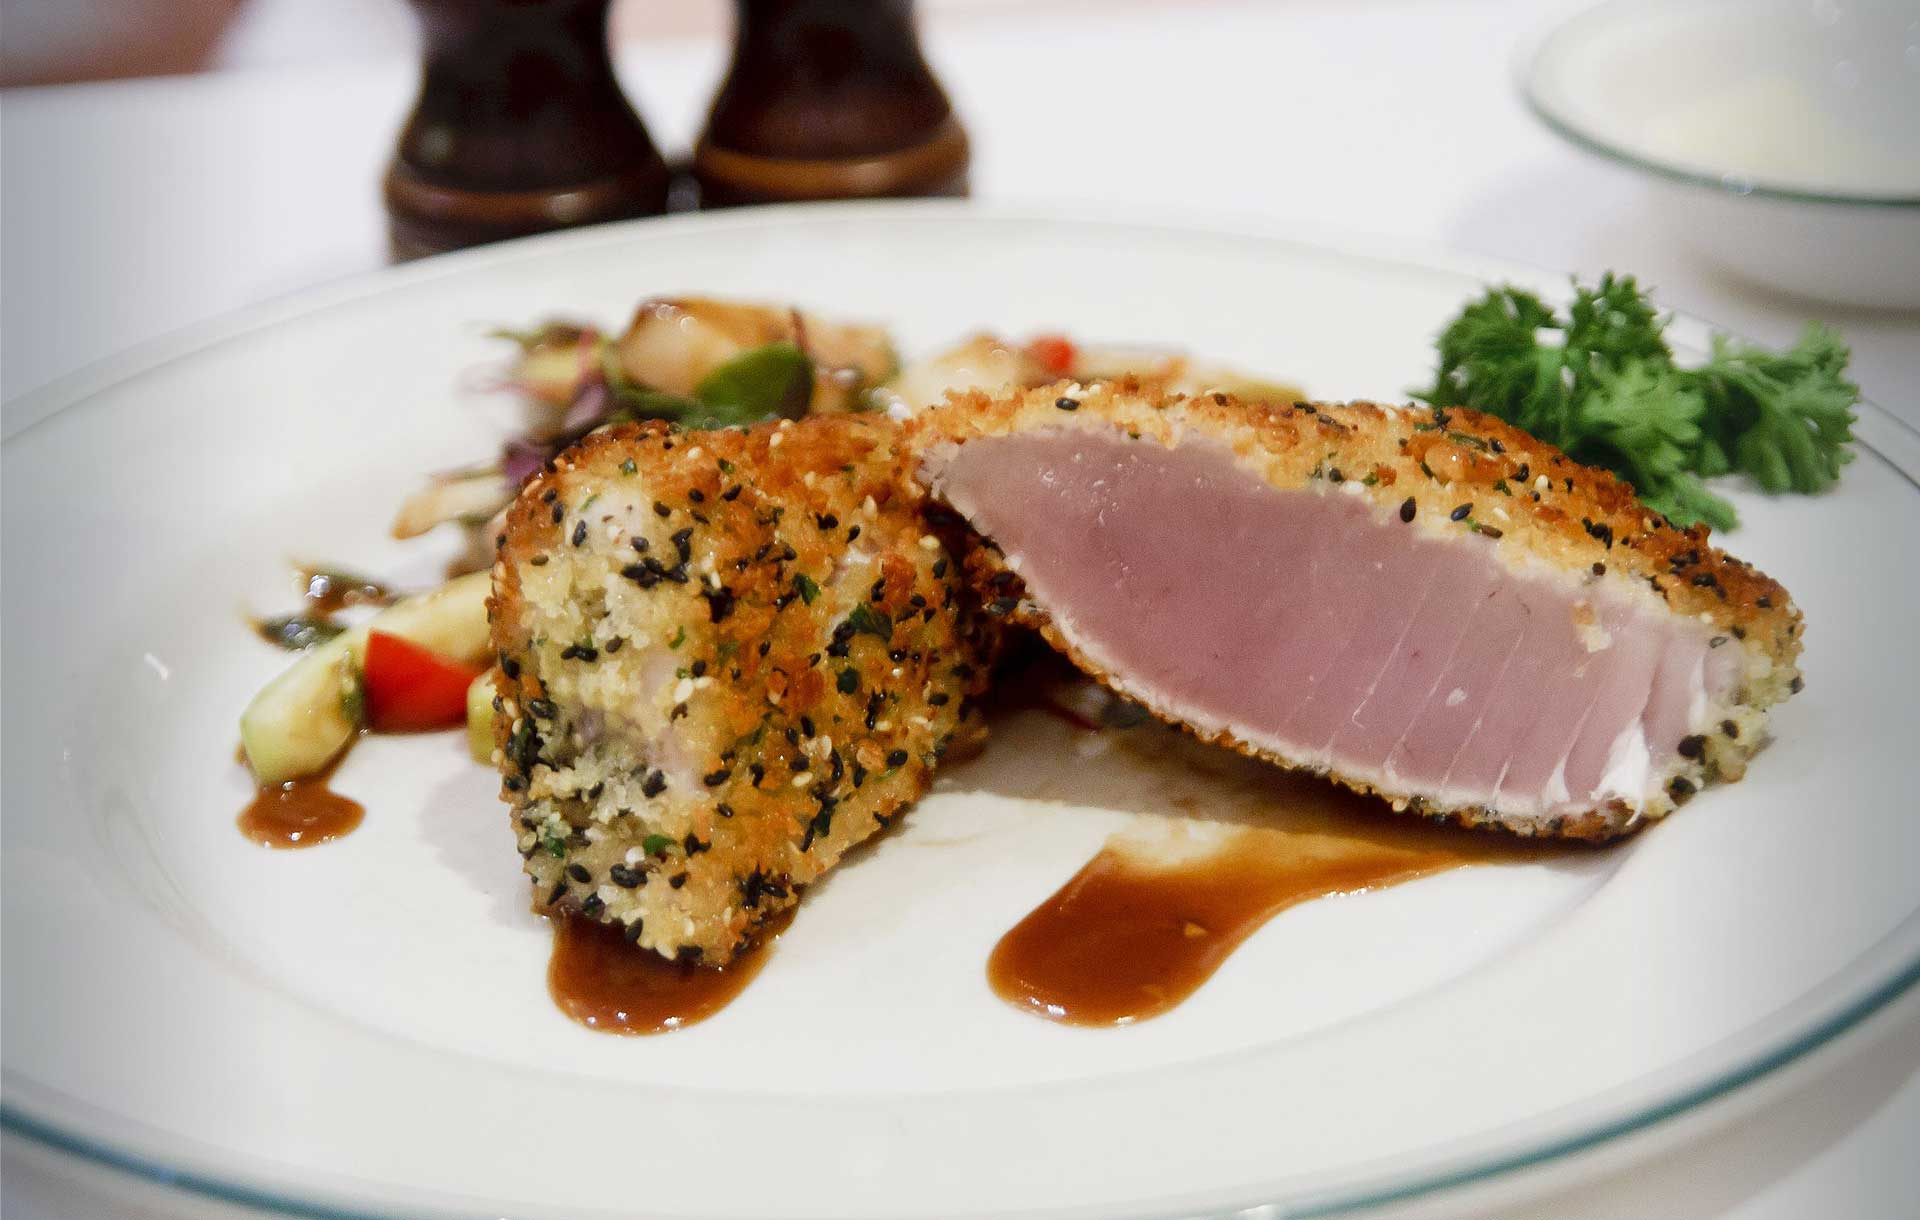 Harbour Marine Albacore Tuna is a a preferred choice for food service and hospitality customers.